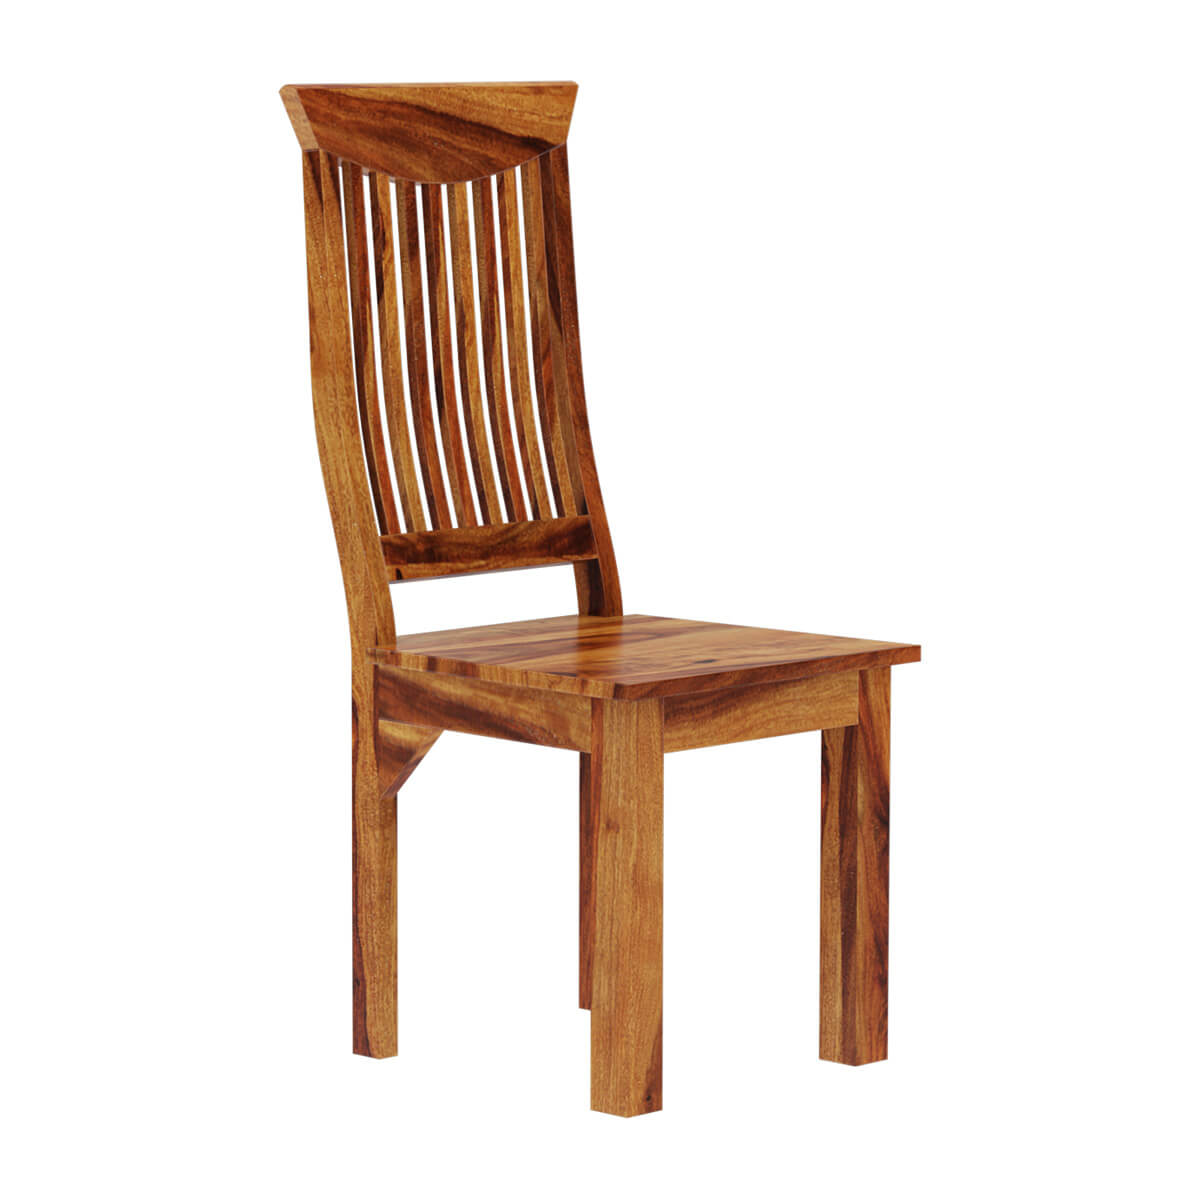 modern wood chair all weather chairs india idaho solid contemporary wave back ergonomic